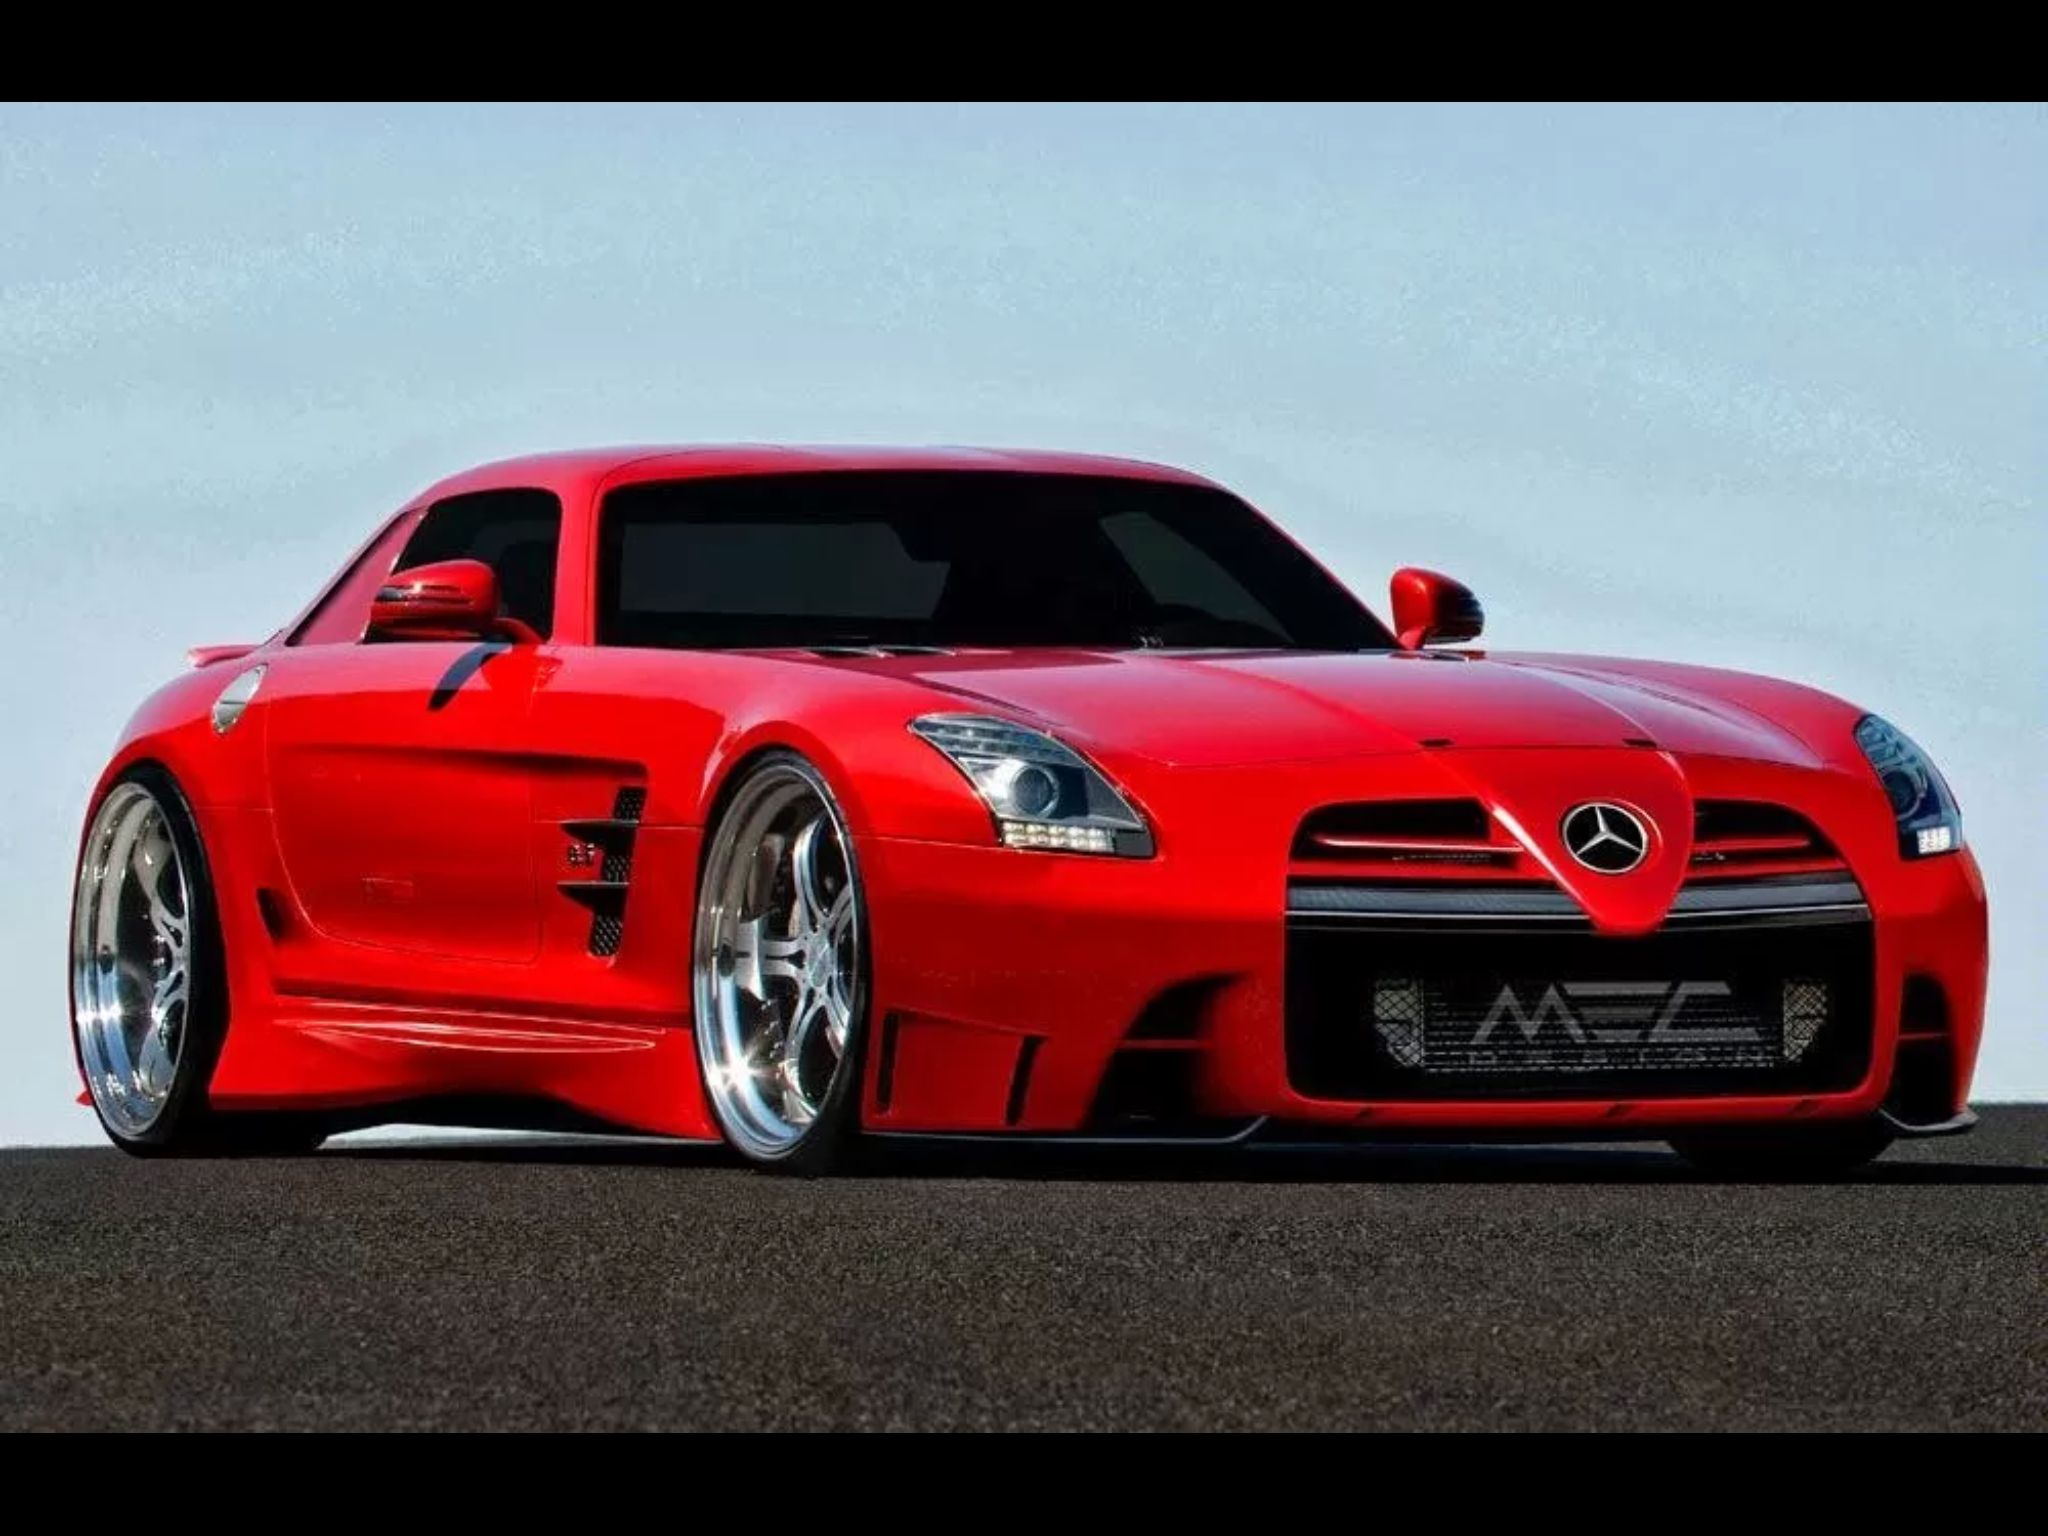 SLS AMG! Mercedes Benz Sales and Leasing